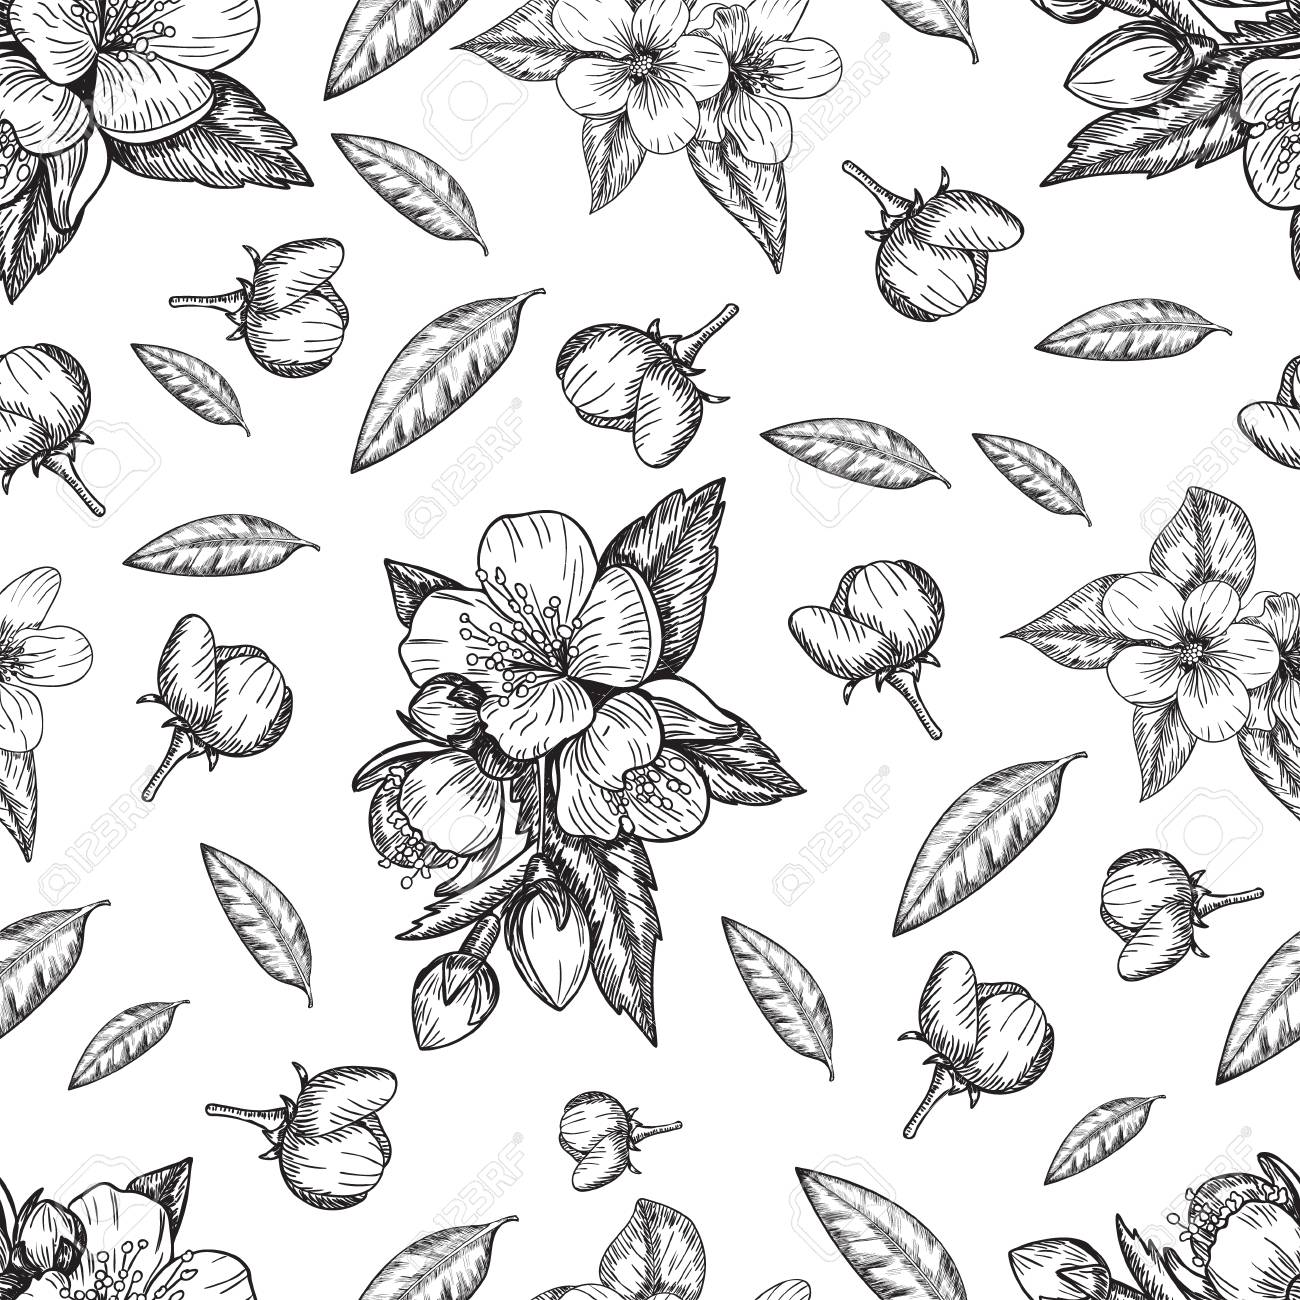 seamless pattern flowers and leaves of the apple tree sketch Apple Branch seamless pattern flowers and leaves of the apple tree sketch illustration stock vector